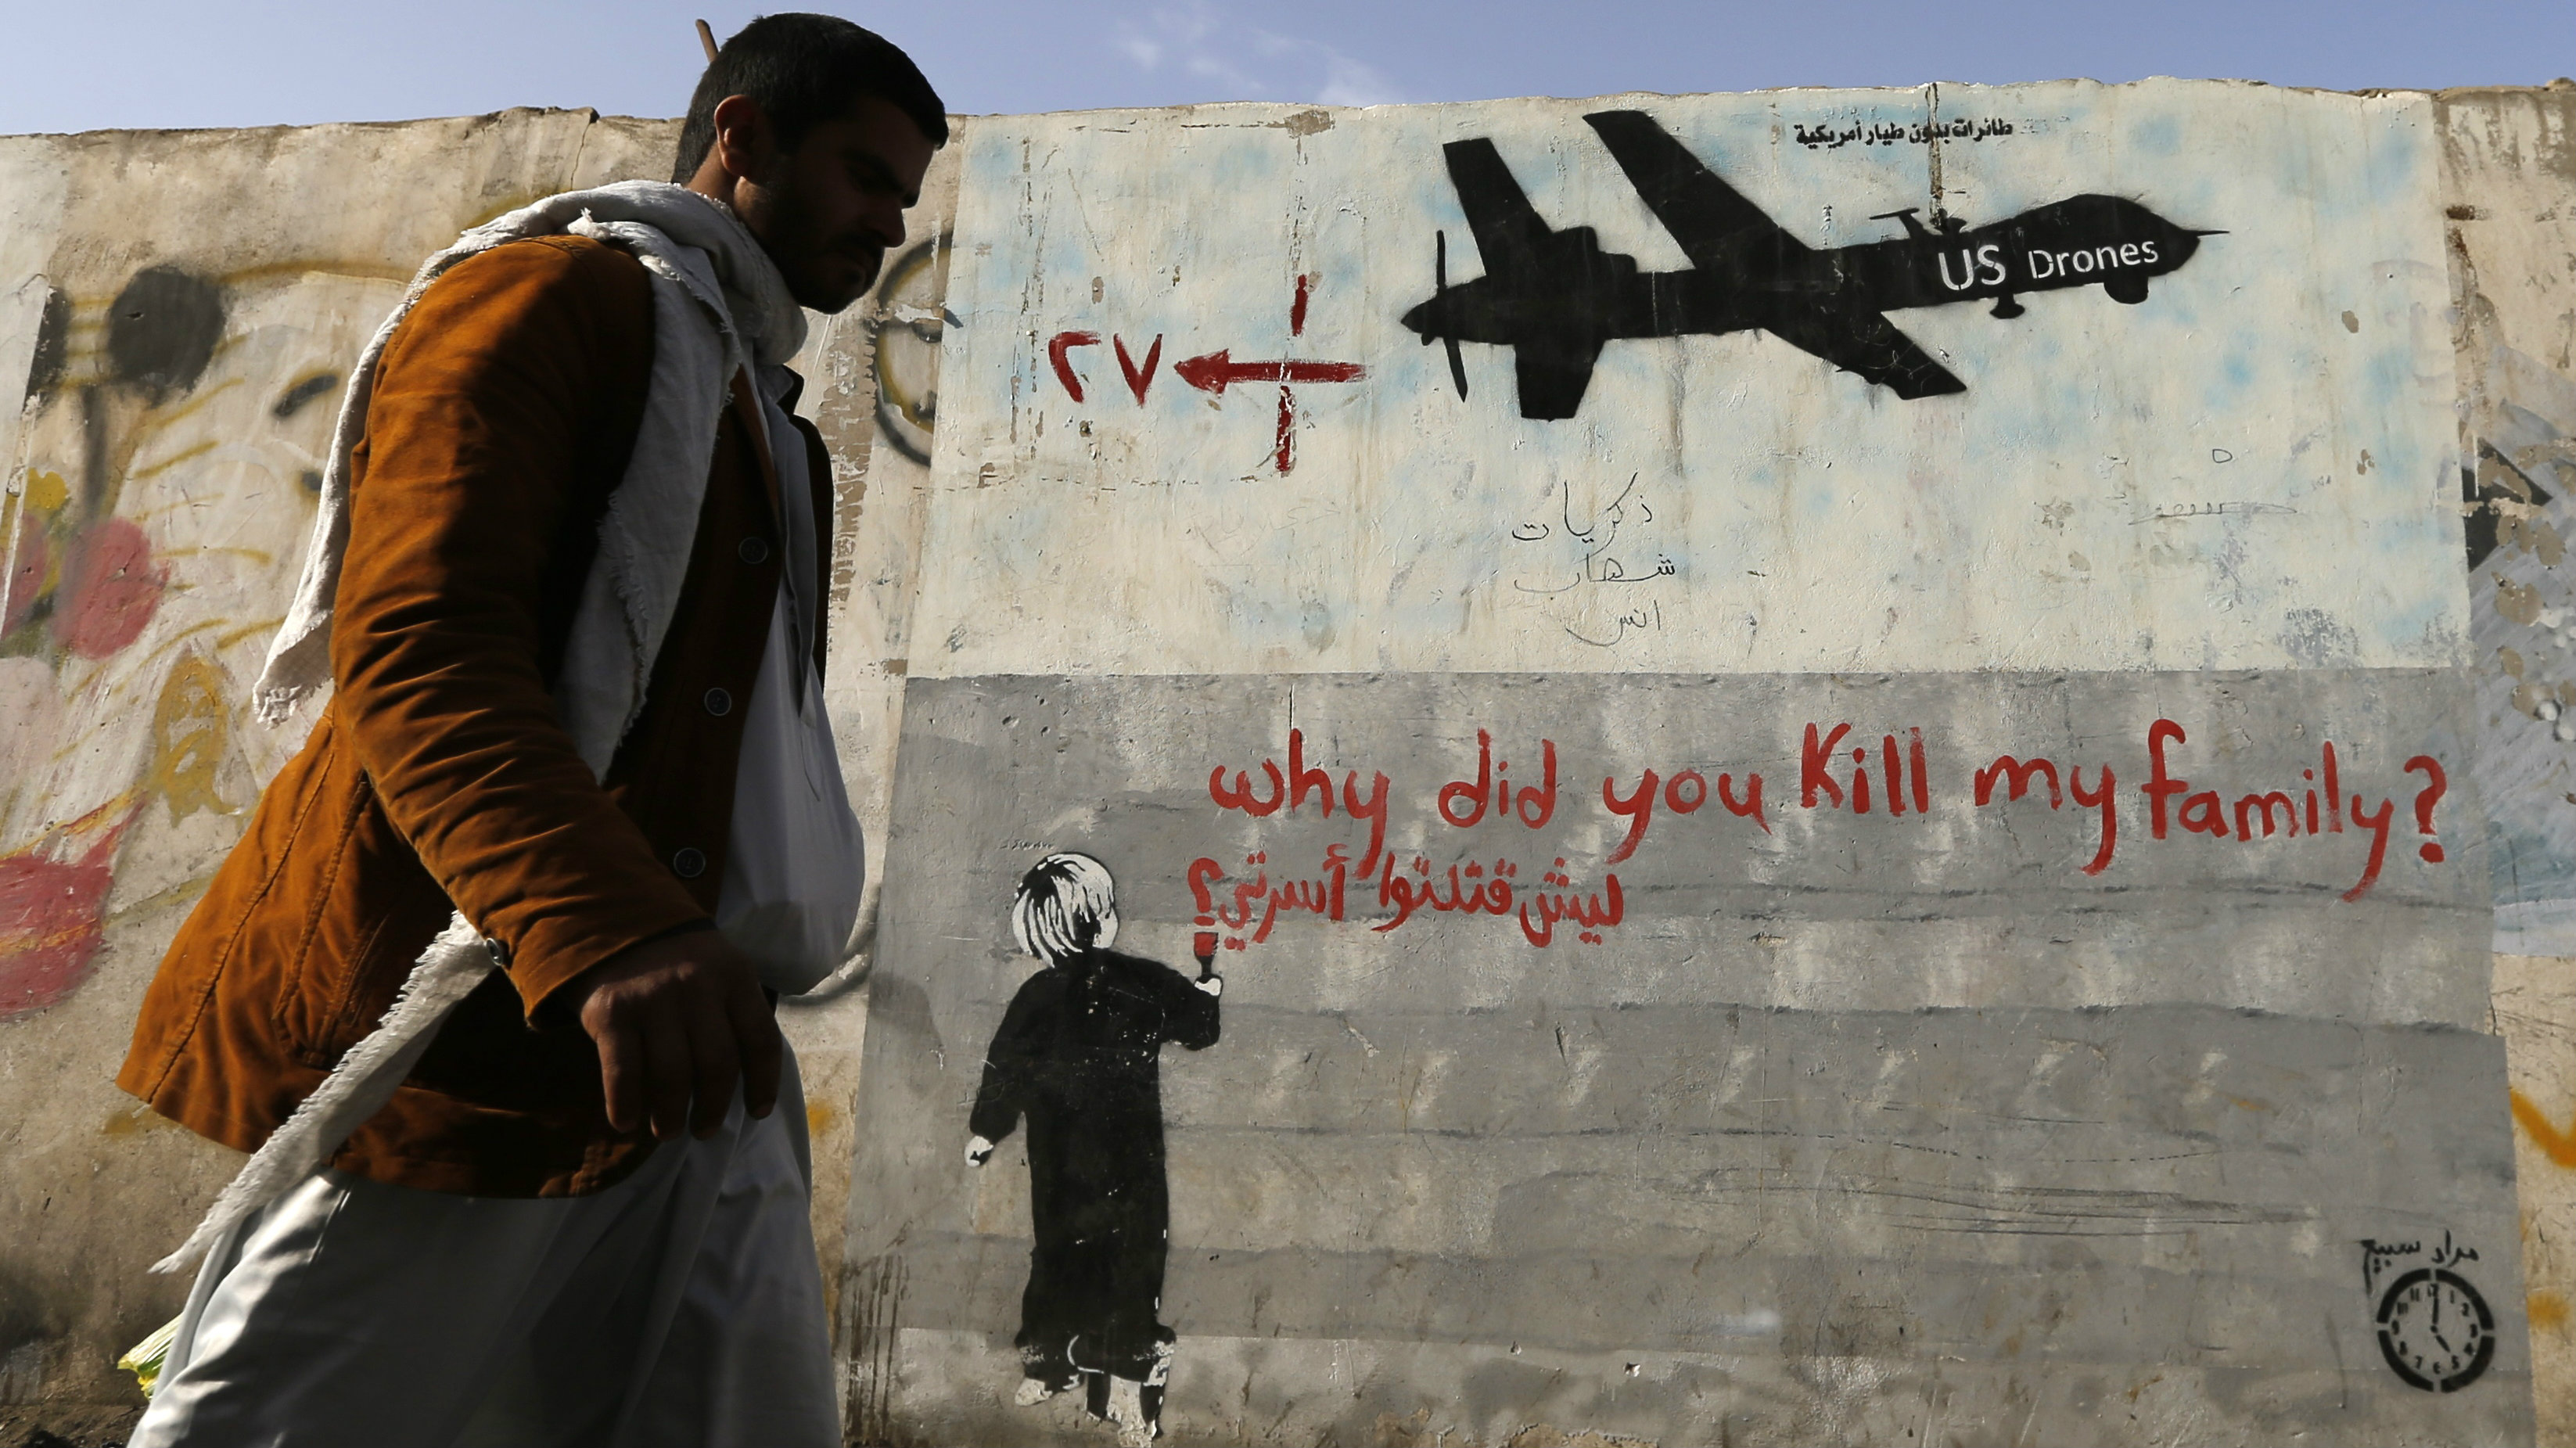 A man walks past a graffiti, denouncing strikes by U.S. drones in Yemen, painted on a wall in Sanaa November 13, 2014. Yemeni authorities have paid out tens of thousands of dollars to victims of drone strikes using U.S.-supplied funds, a source close to Yemen's presidency said, echoing accounts by legal sources and a family that lost two members in a 2012 raid.